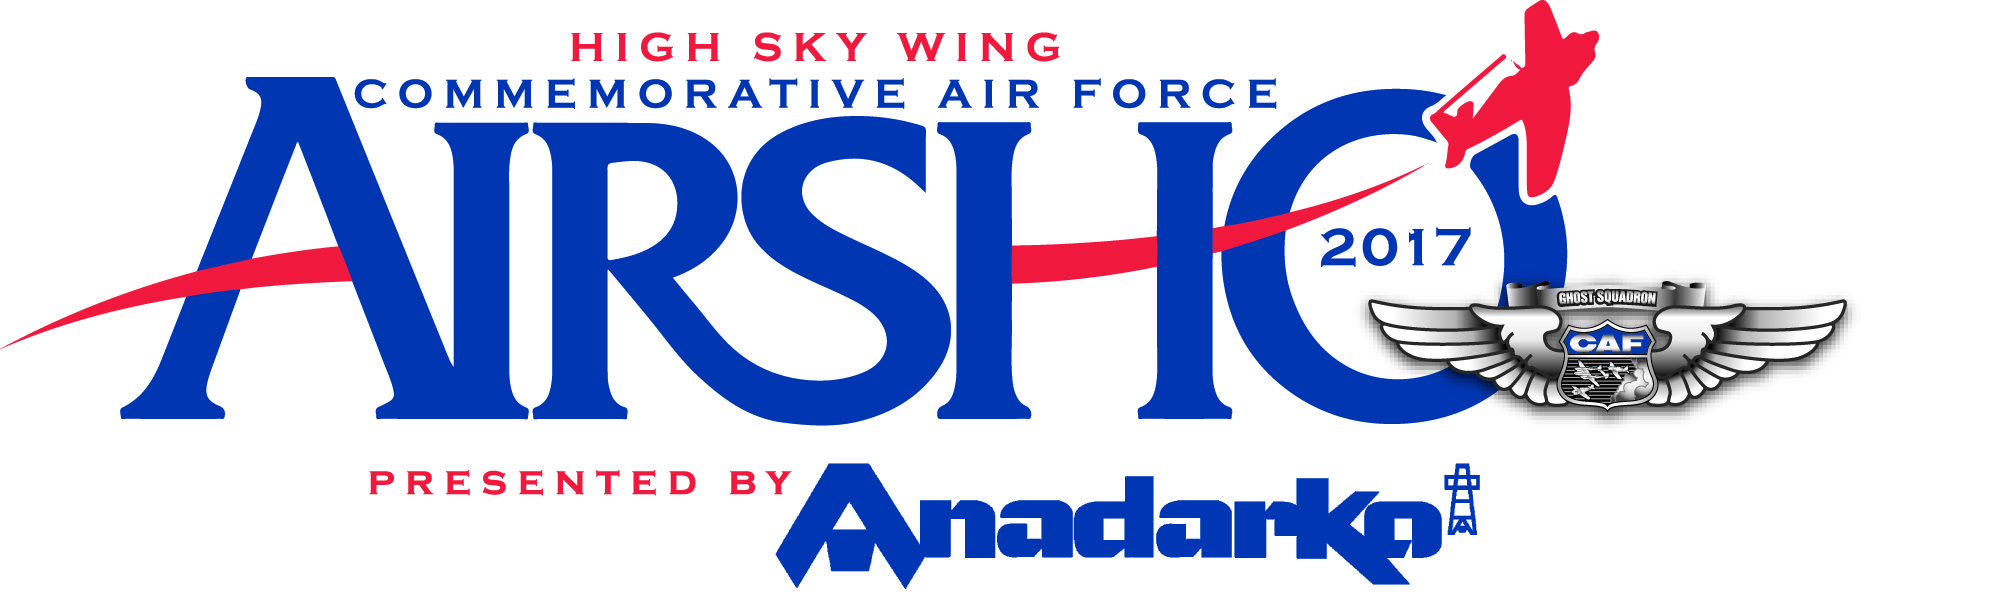 HSW AIRSHO Presented by logo 2017 blue